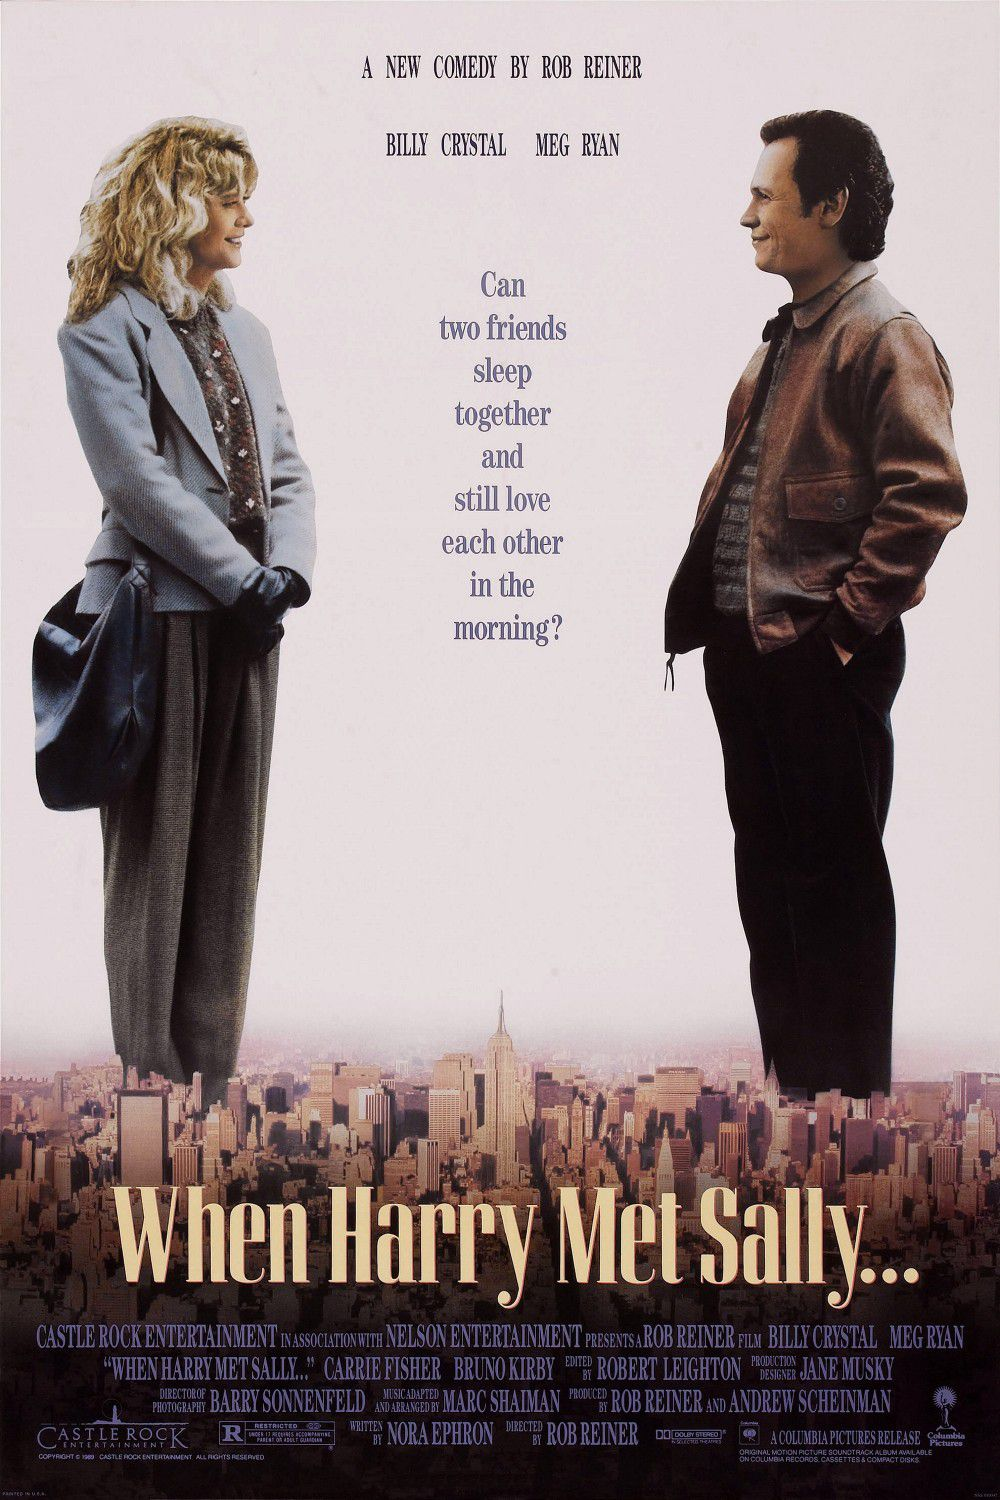 Film - When Harry met Sally - Harry ti presento Sally - love story - Meg Ryan - Billy Crystal